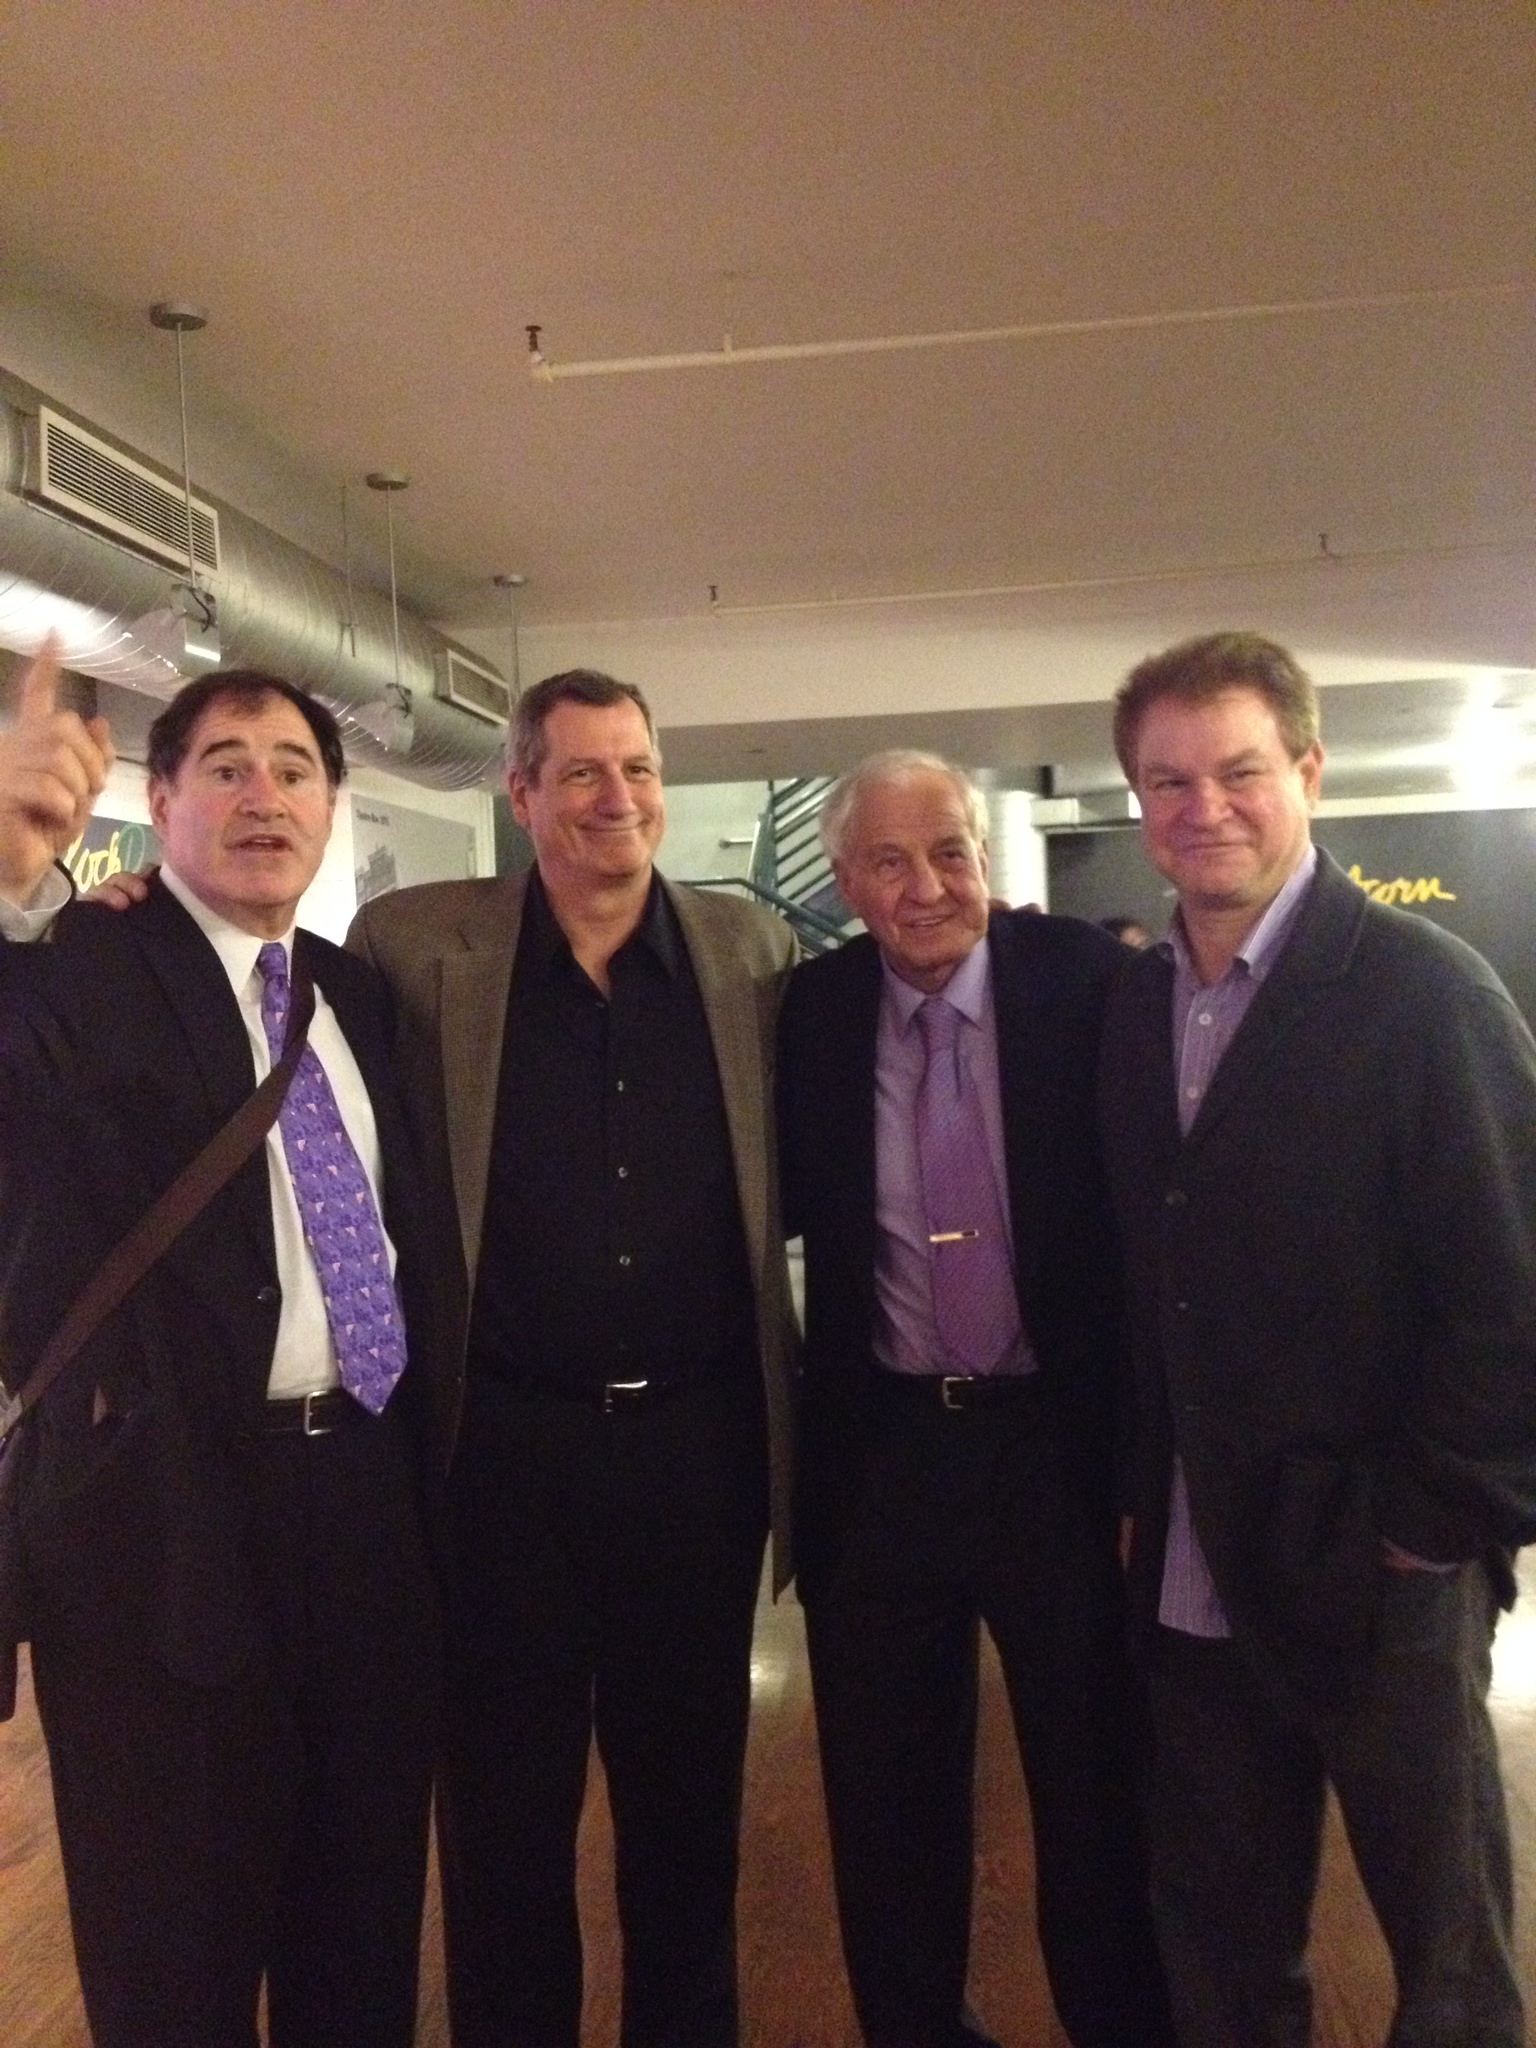 Richard Kind, Mike Bencivenga, Garry Marshall